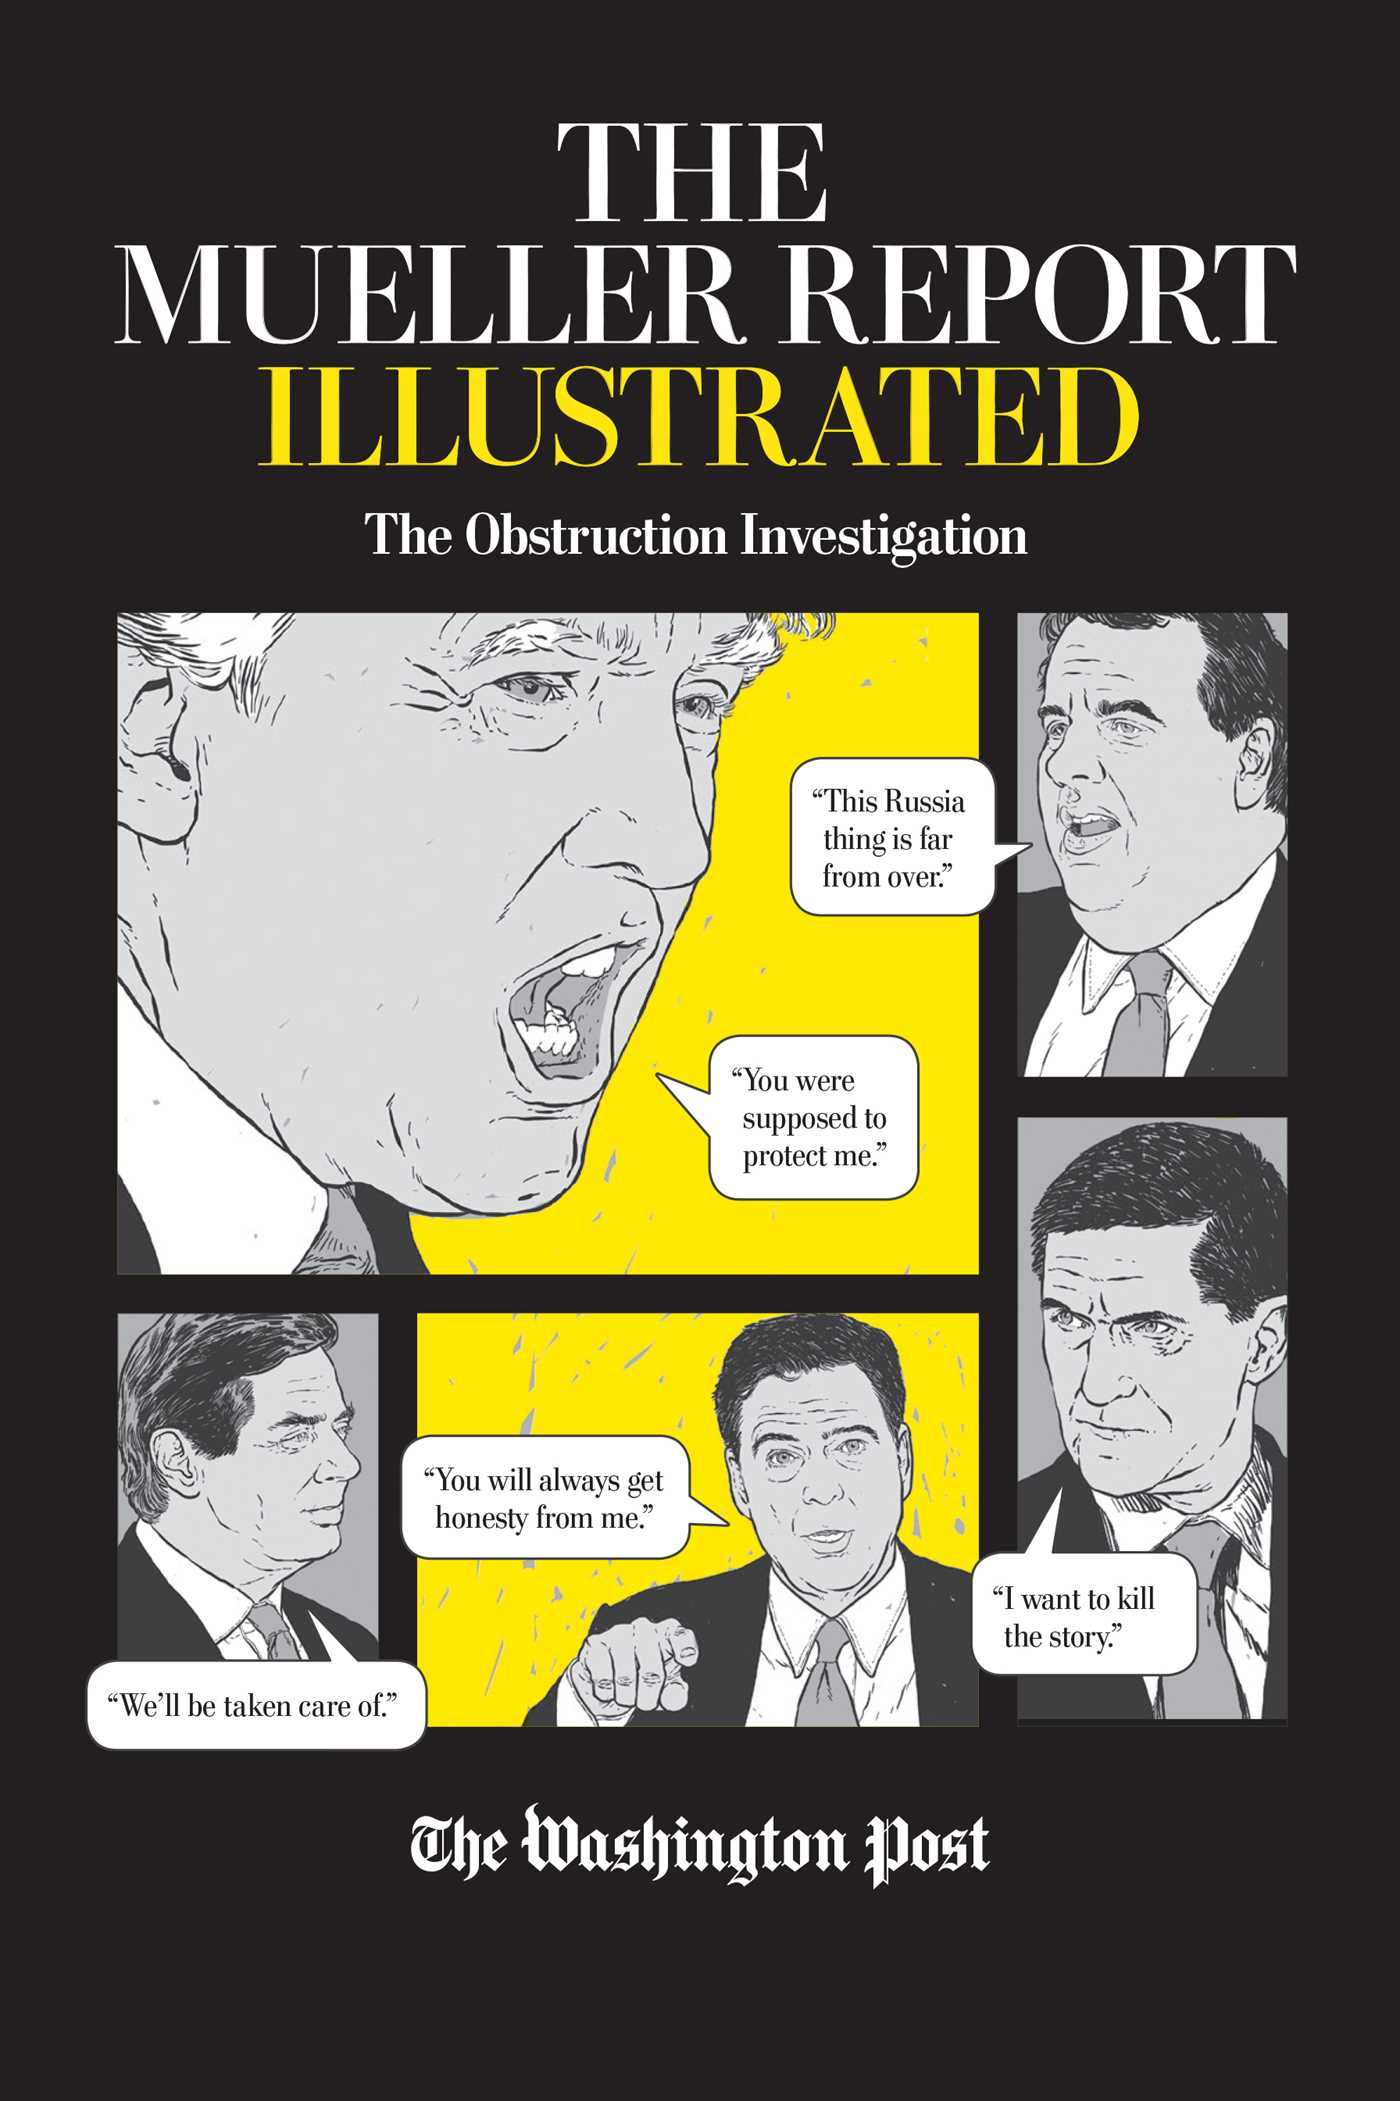 The Mueller Report Illustrated by The Washington Post